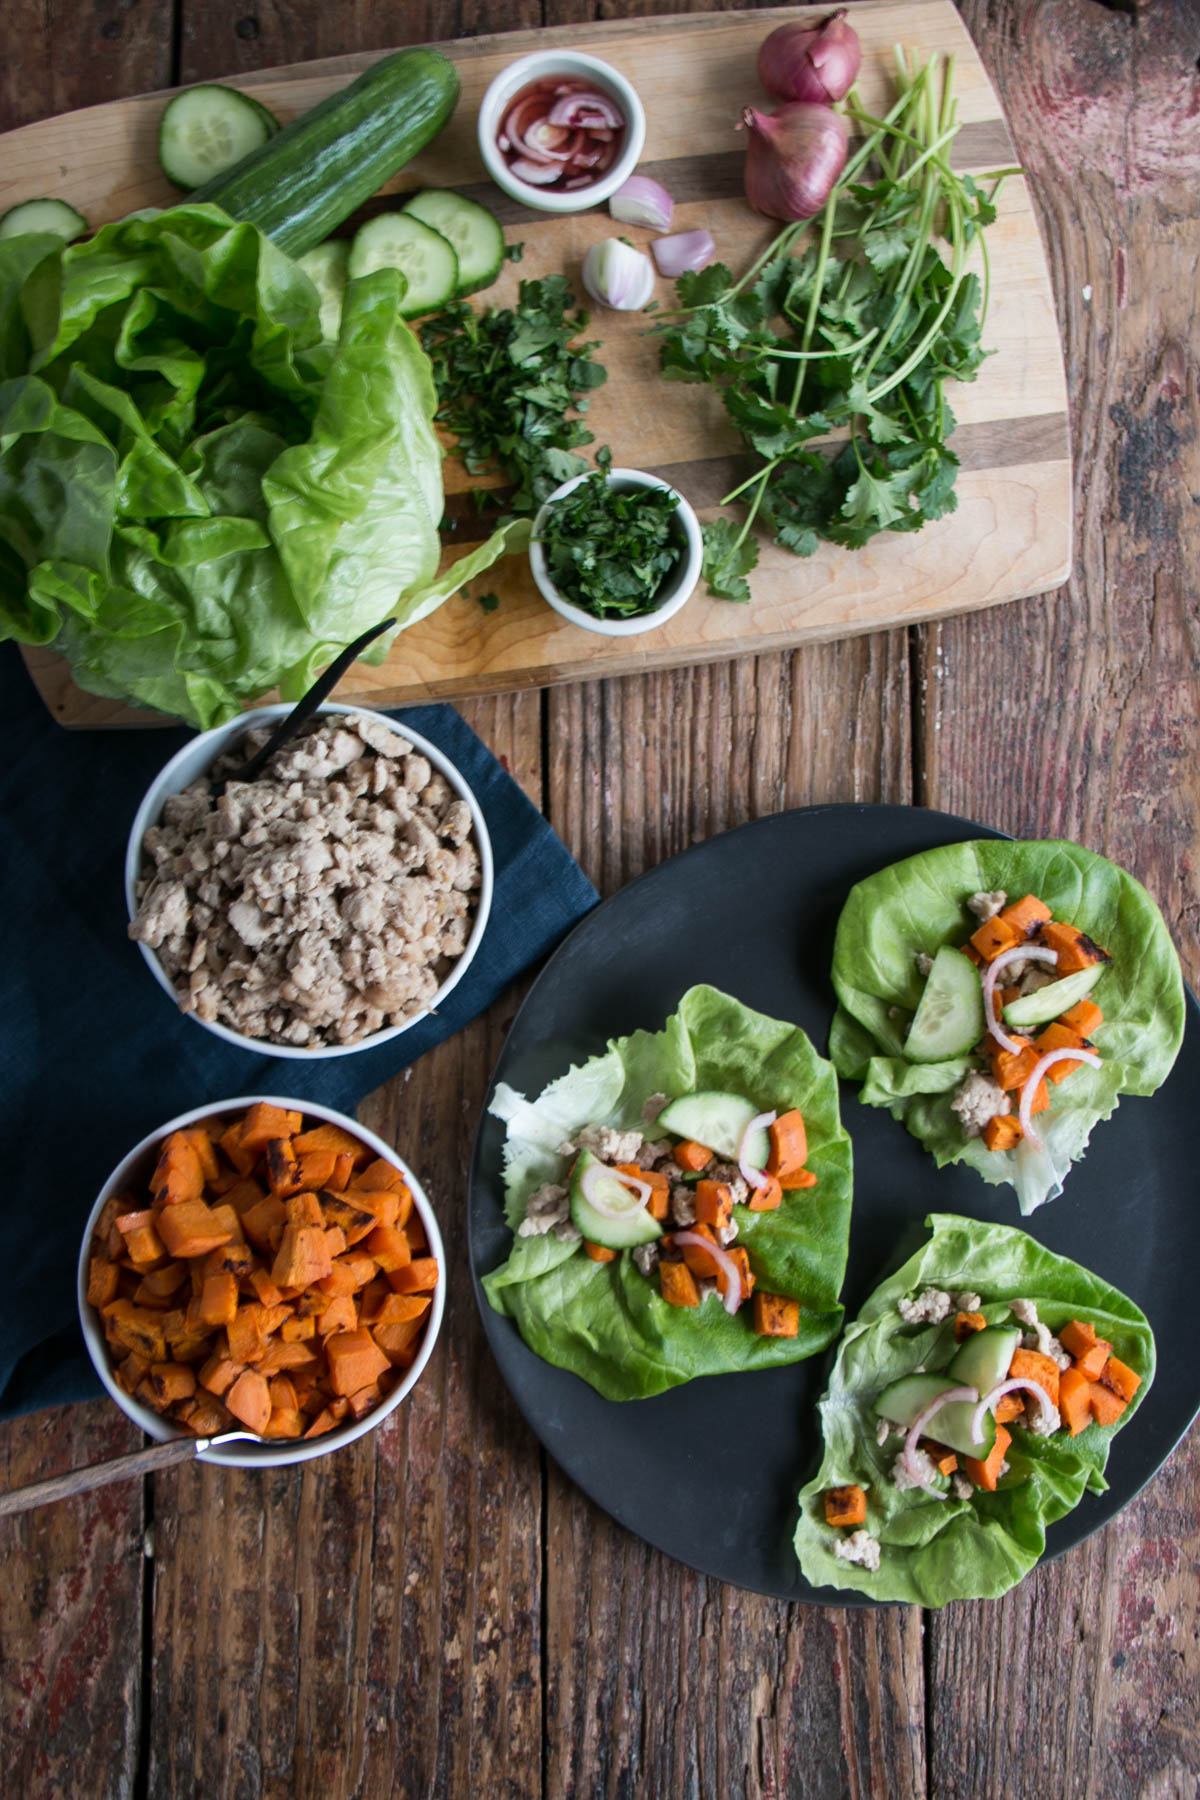 Light, vibrant, and scrumptious Sweet Potato Lettuce Wraps! Delicious Thai Peanut Sweet Potatoes, Chicken, and Pickled Shallots for a refreshing and satisfying meal. #lettucewraps #healthy #sweetpotatoes